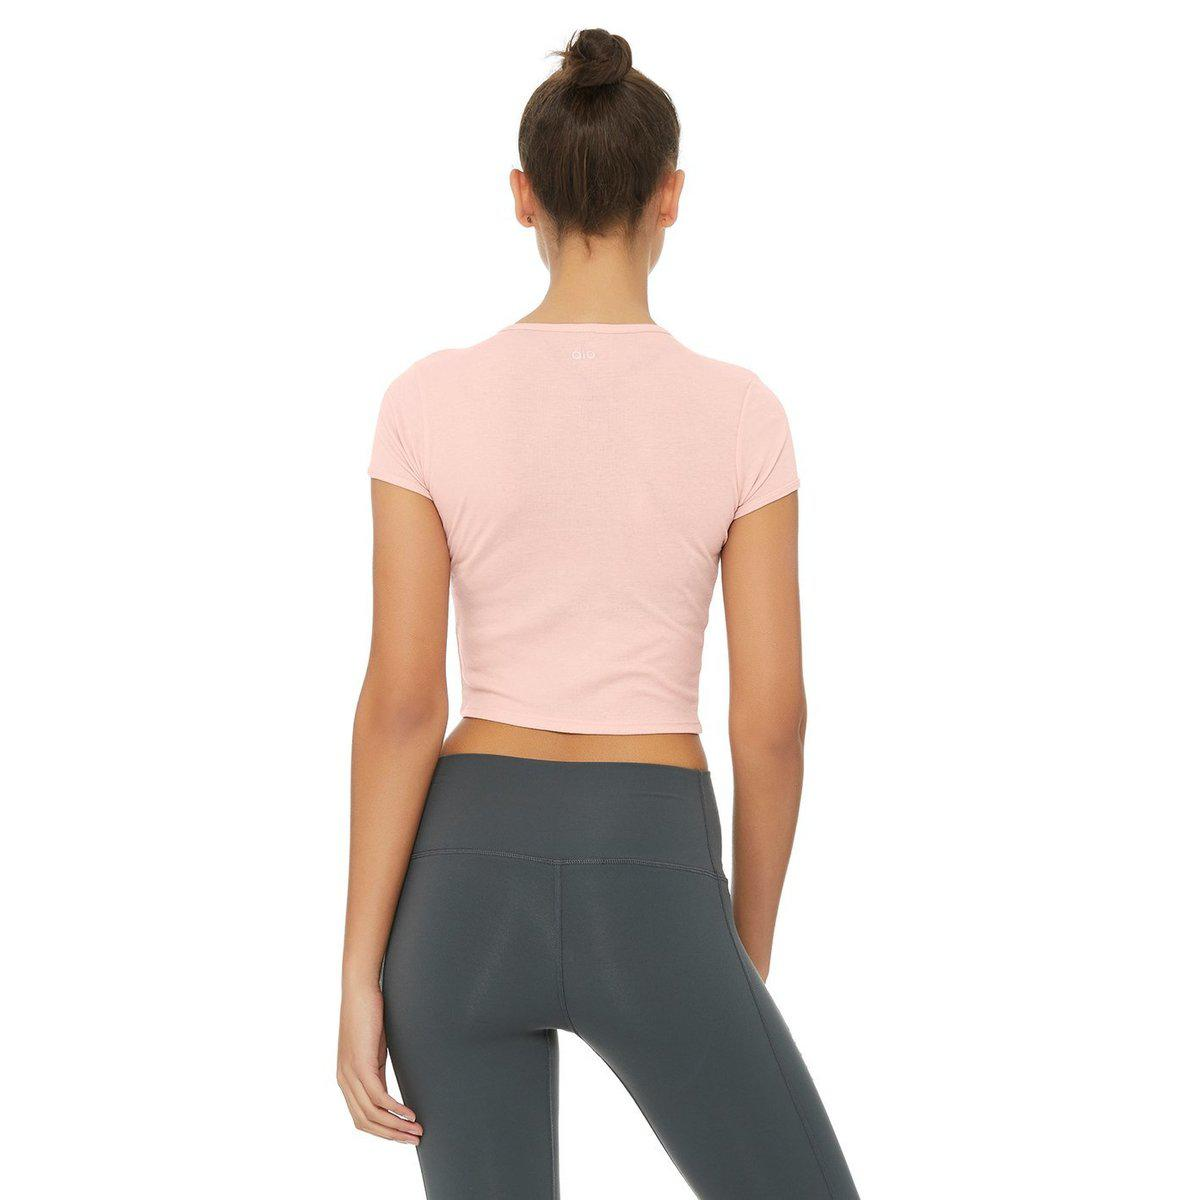 bb804e0be30 Lyst - Alo Yoga Baby Tee in Pink